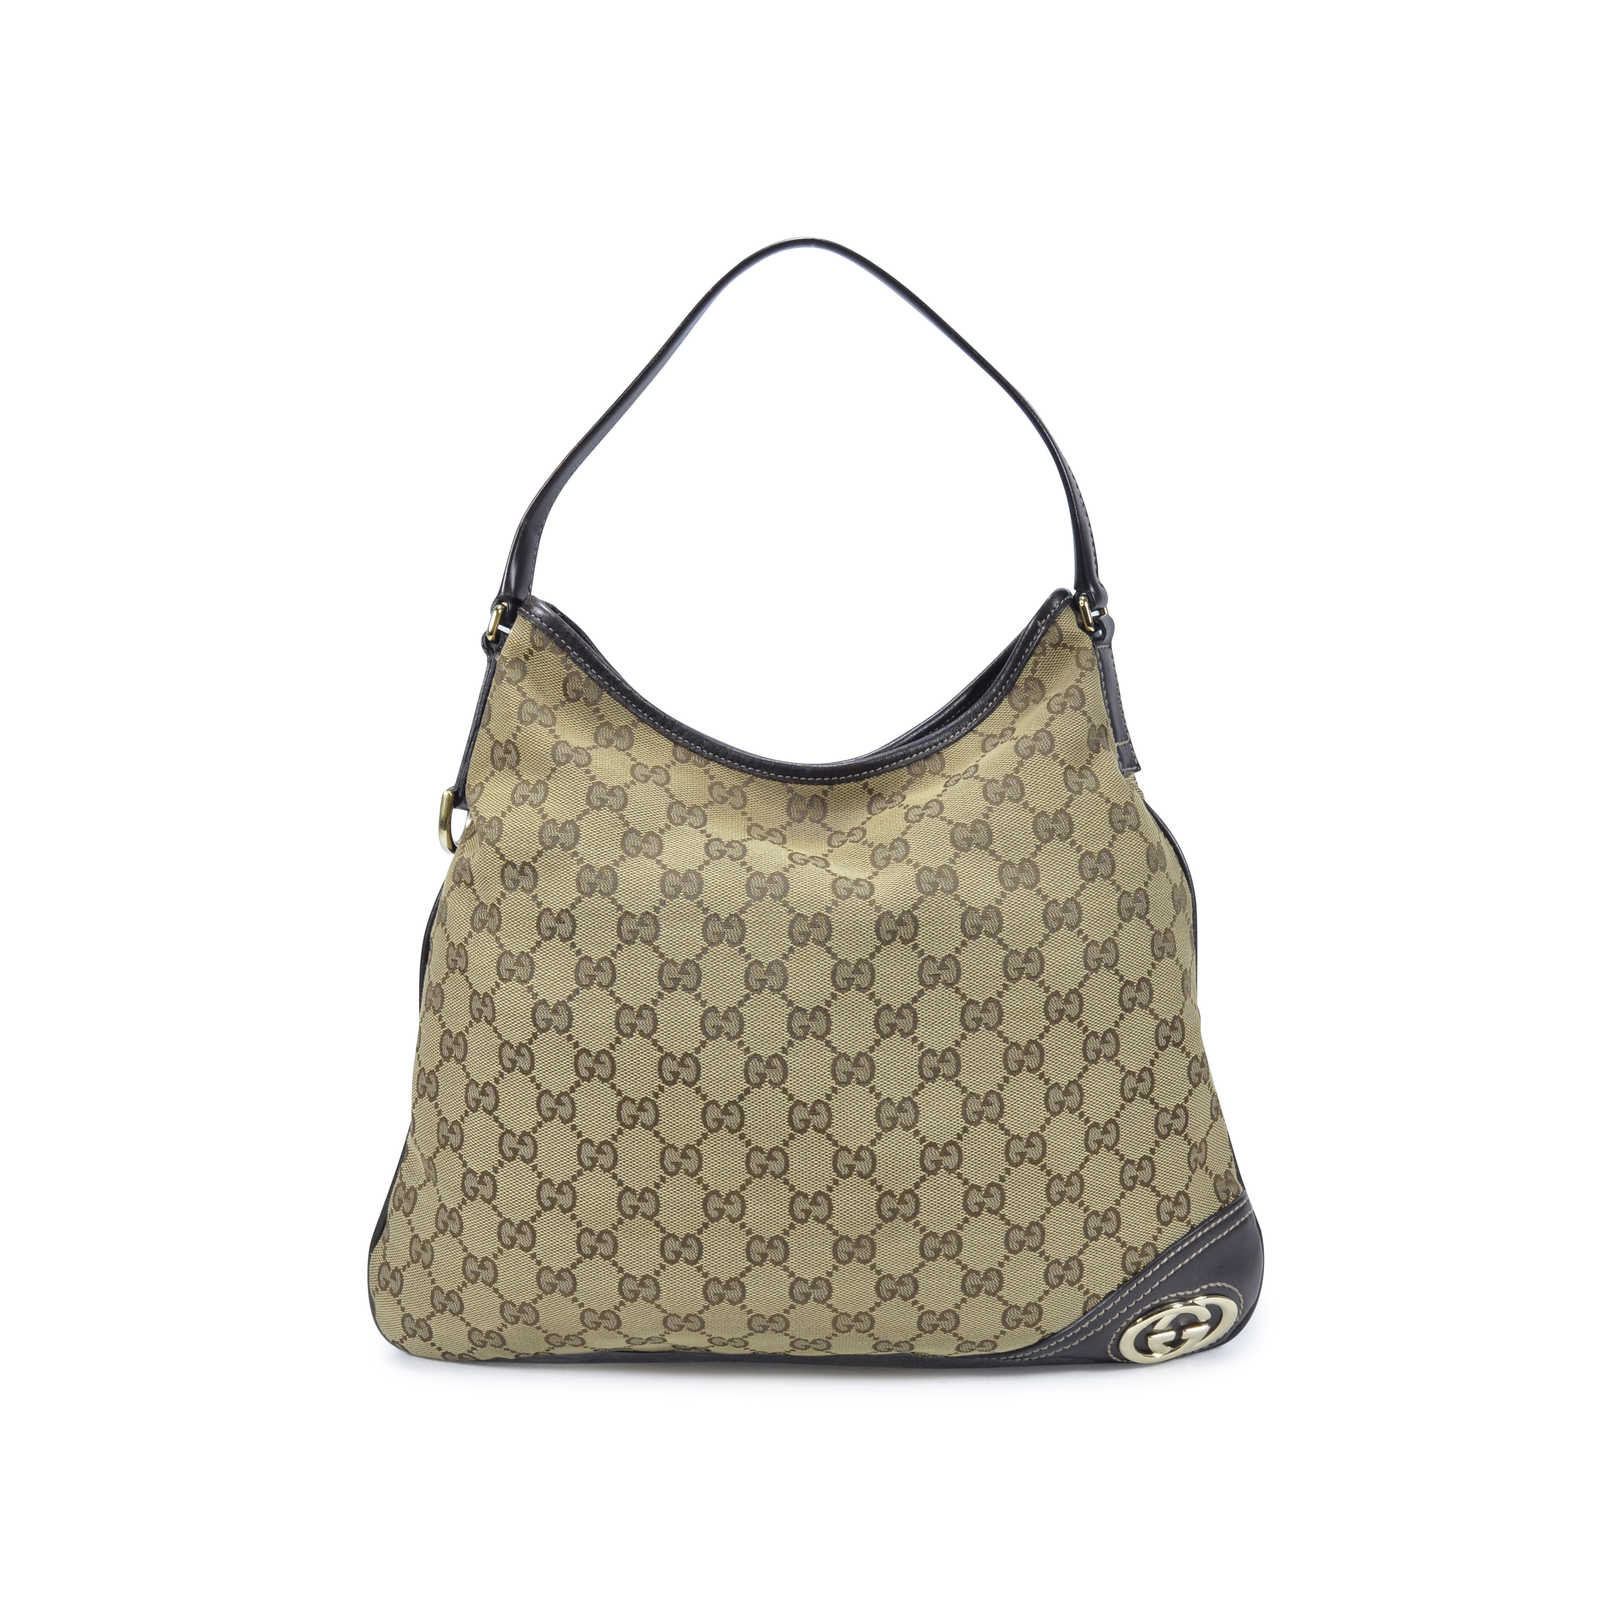 67753d25bd91 Tap to expand · Authentic Second Hand Gucci Monogram Shoulder Bag  (PSS-350-00023) - Thumbnail ...